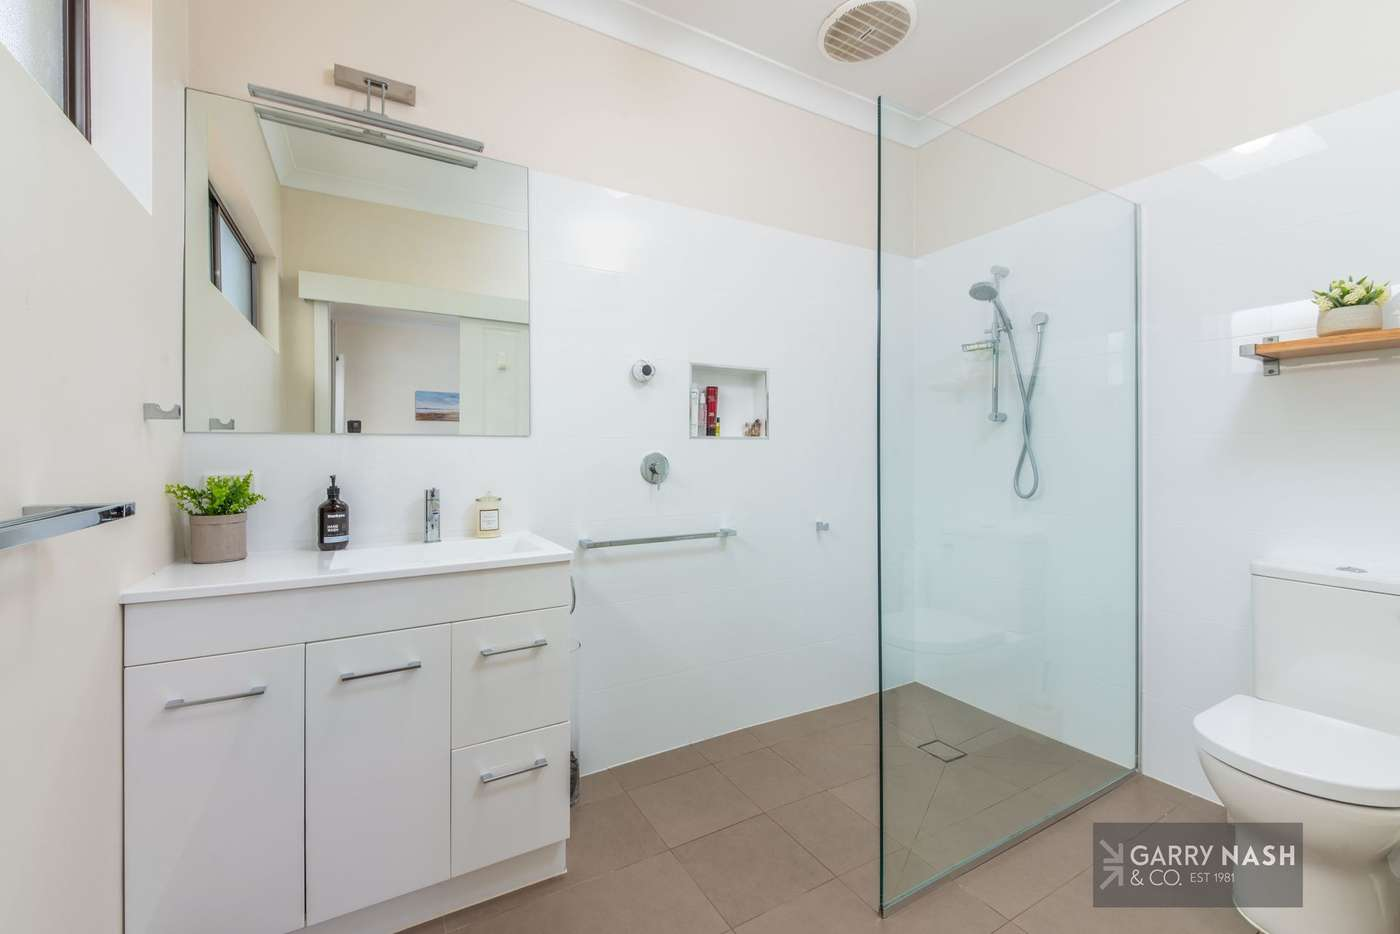 Seventh view of Homely house listing, 6 George Street, Wangaratta VIC 3677